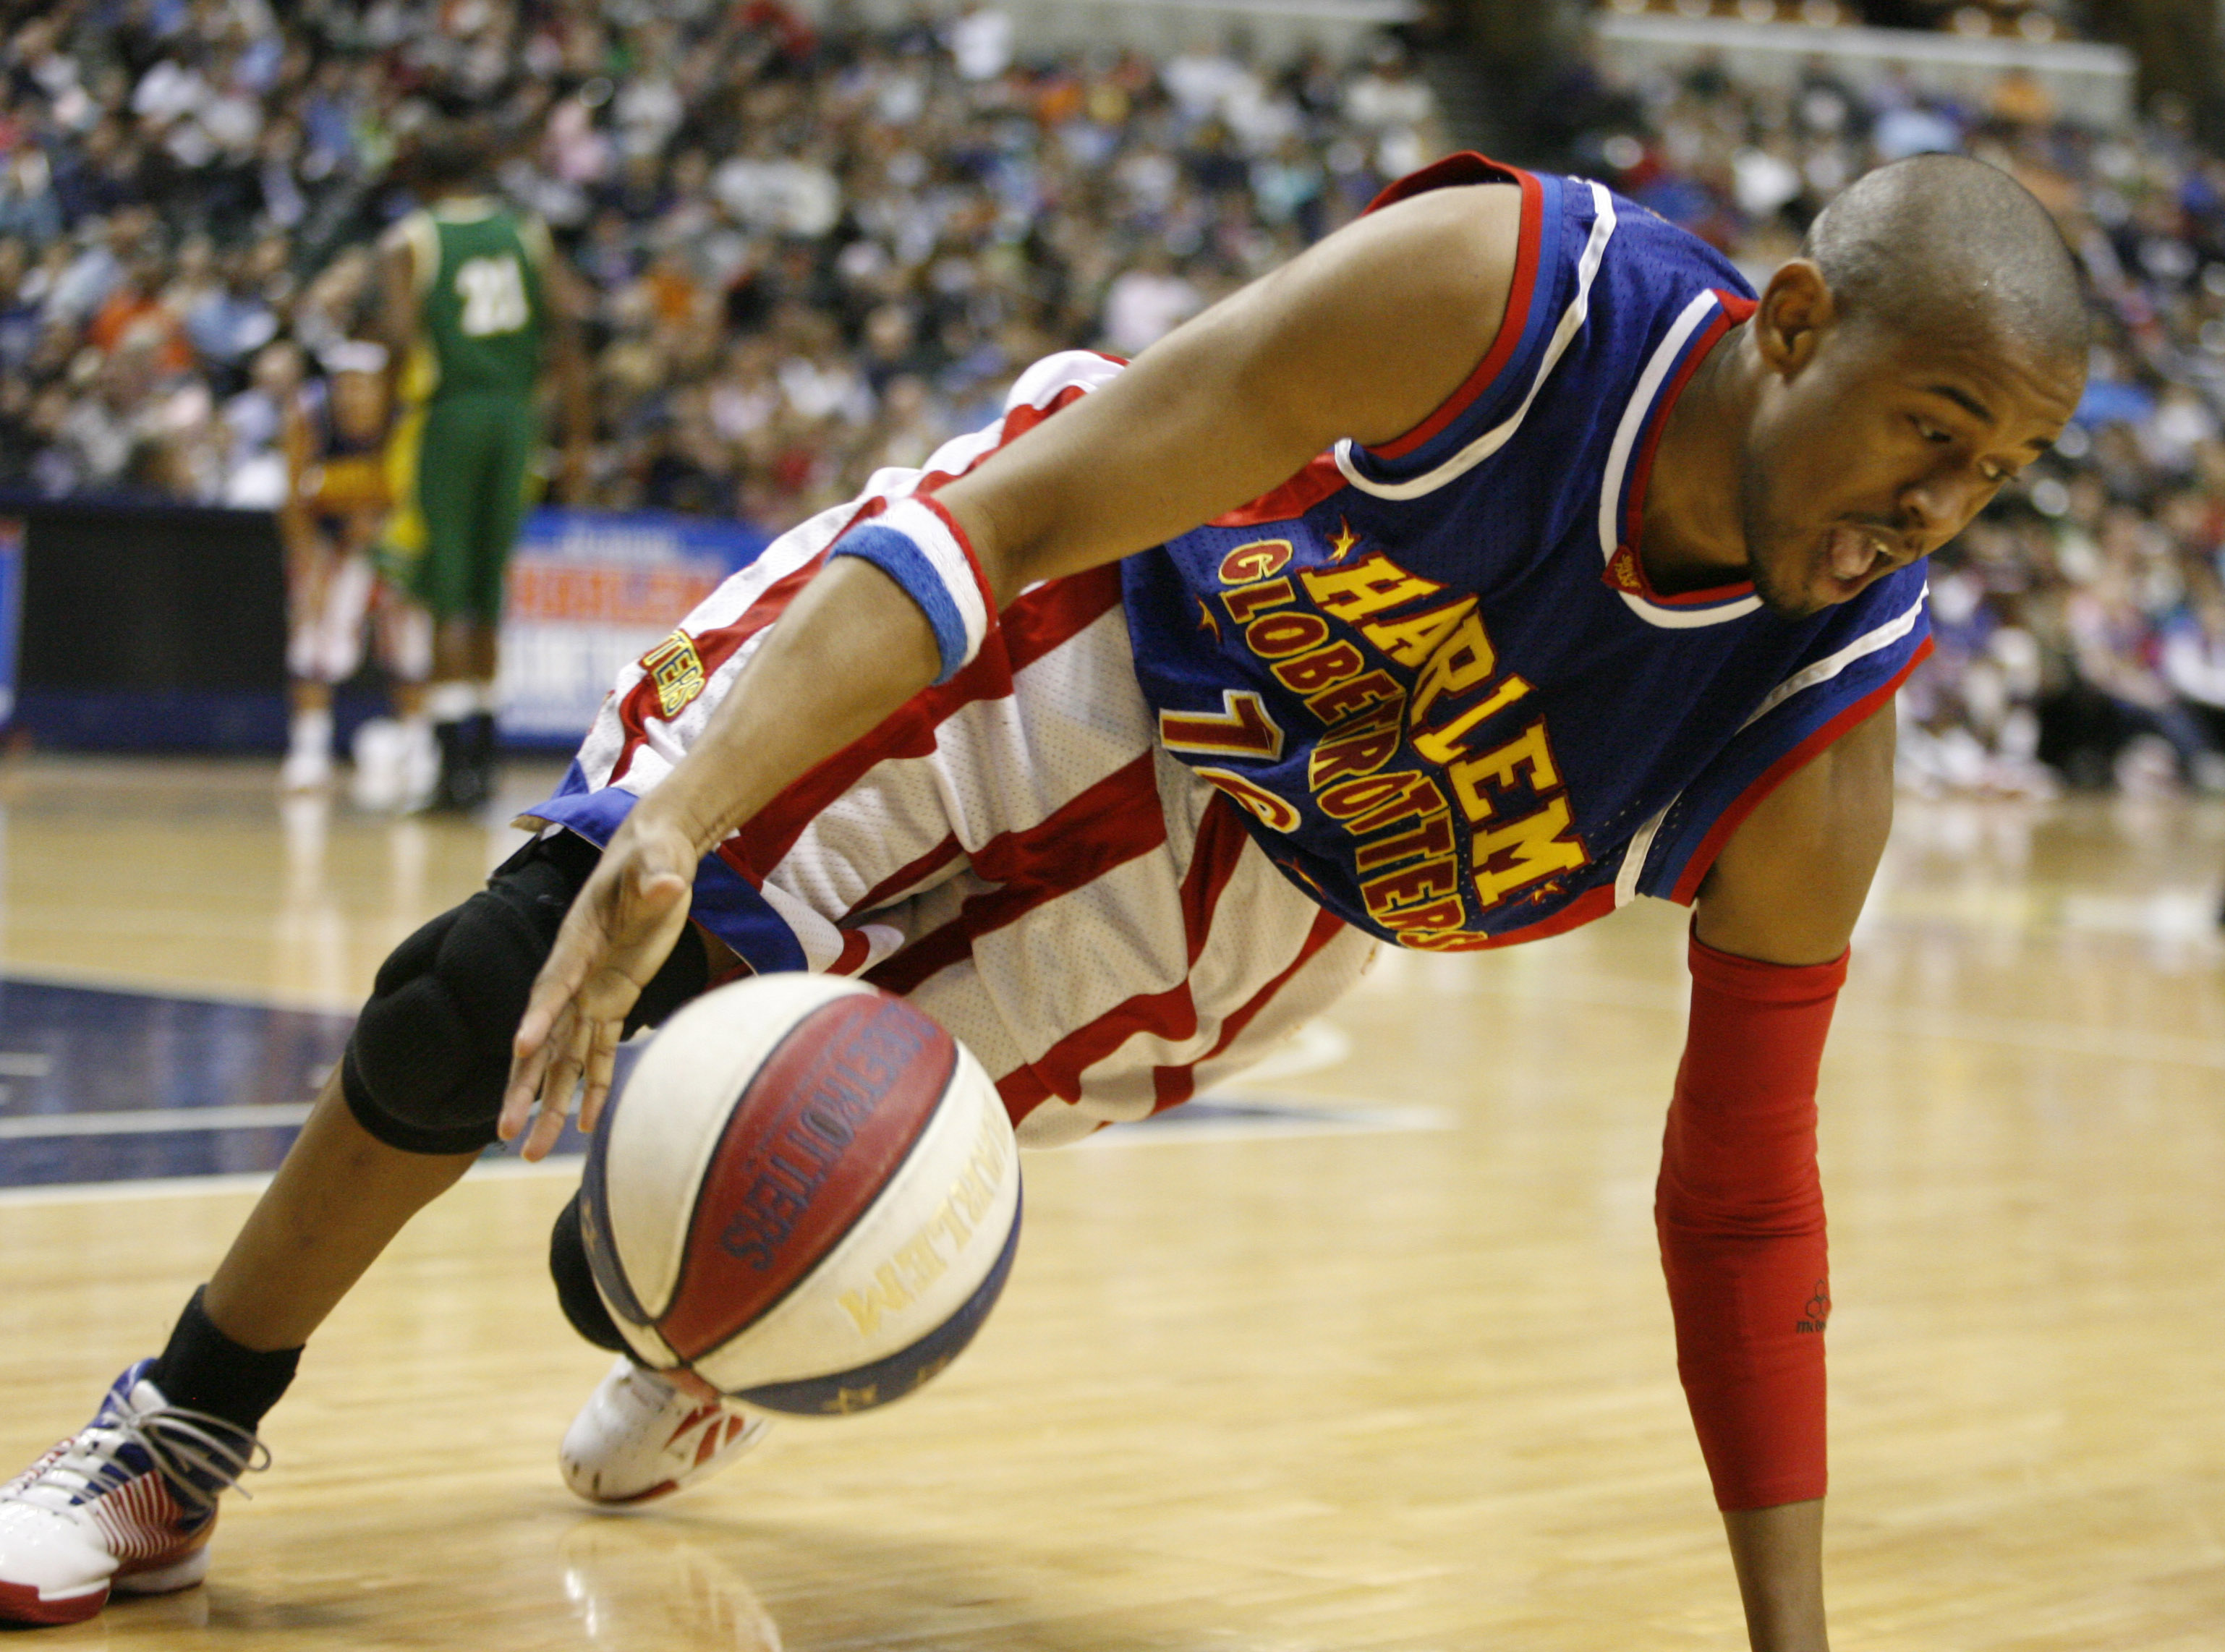 Great college teams can't even beat the Harlem Globetrotters